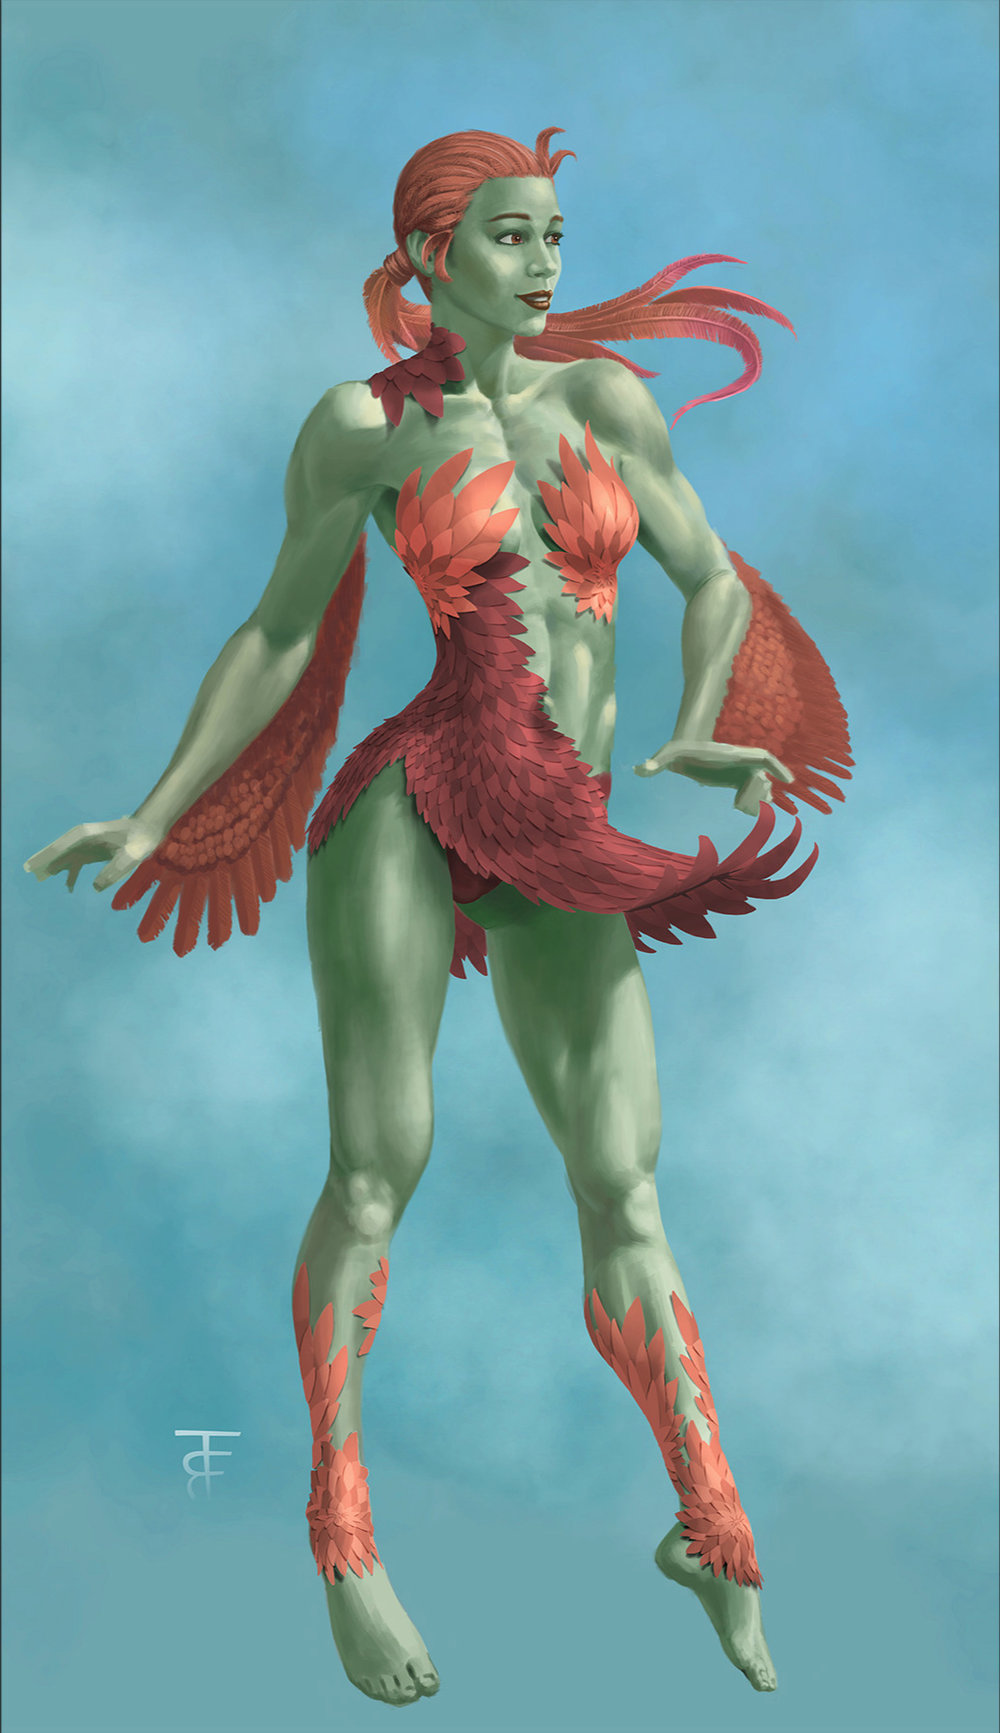 Mermaid+Caress+front+04a+small.jpg